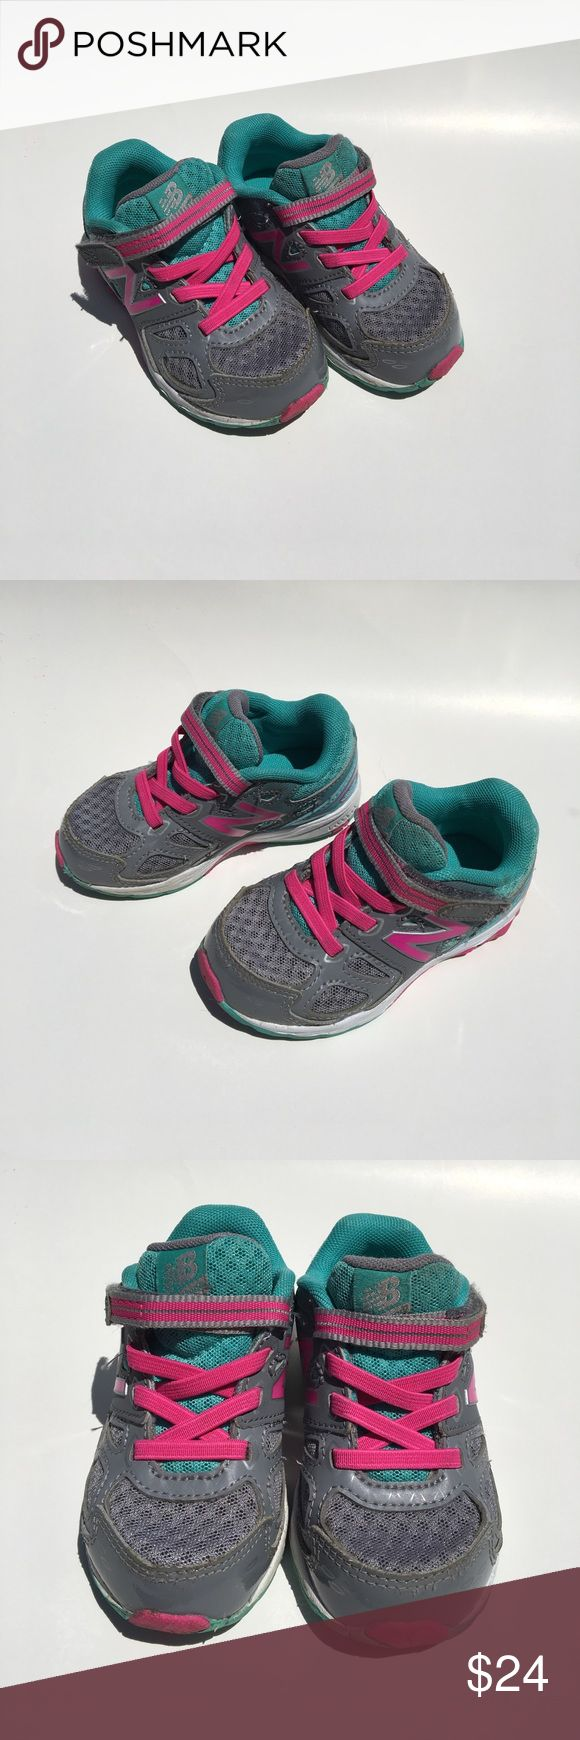 New Balance toddler girls tennis shoes New Balance 680 v3 toddler girls running shoes. My daughter barely wore these and they are in great shape. New Balance Shoes Sneakers